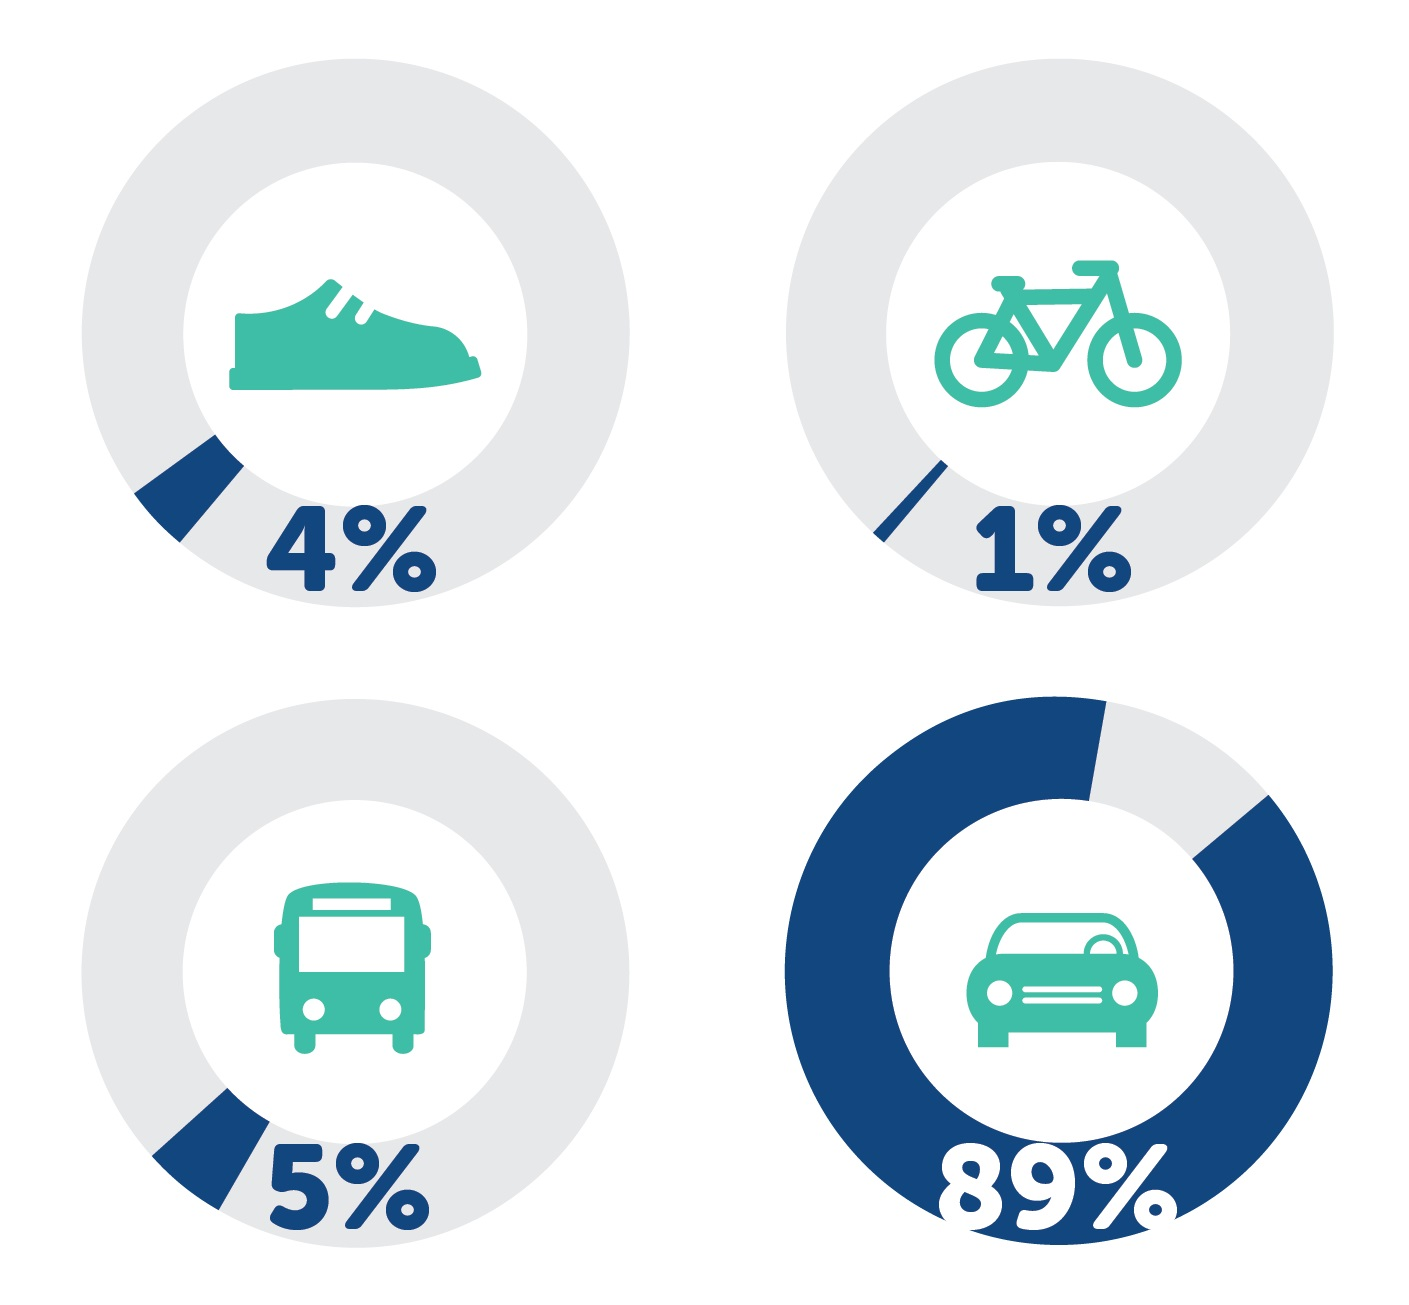 4 percent on foot, 5 by transit, 1 by bike, 89 by car